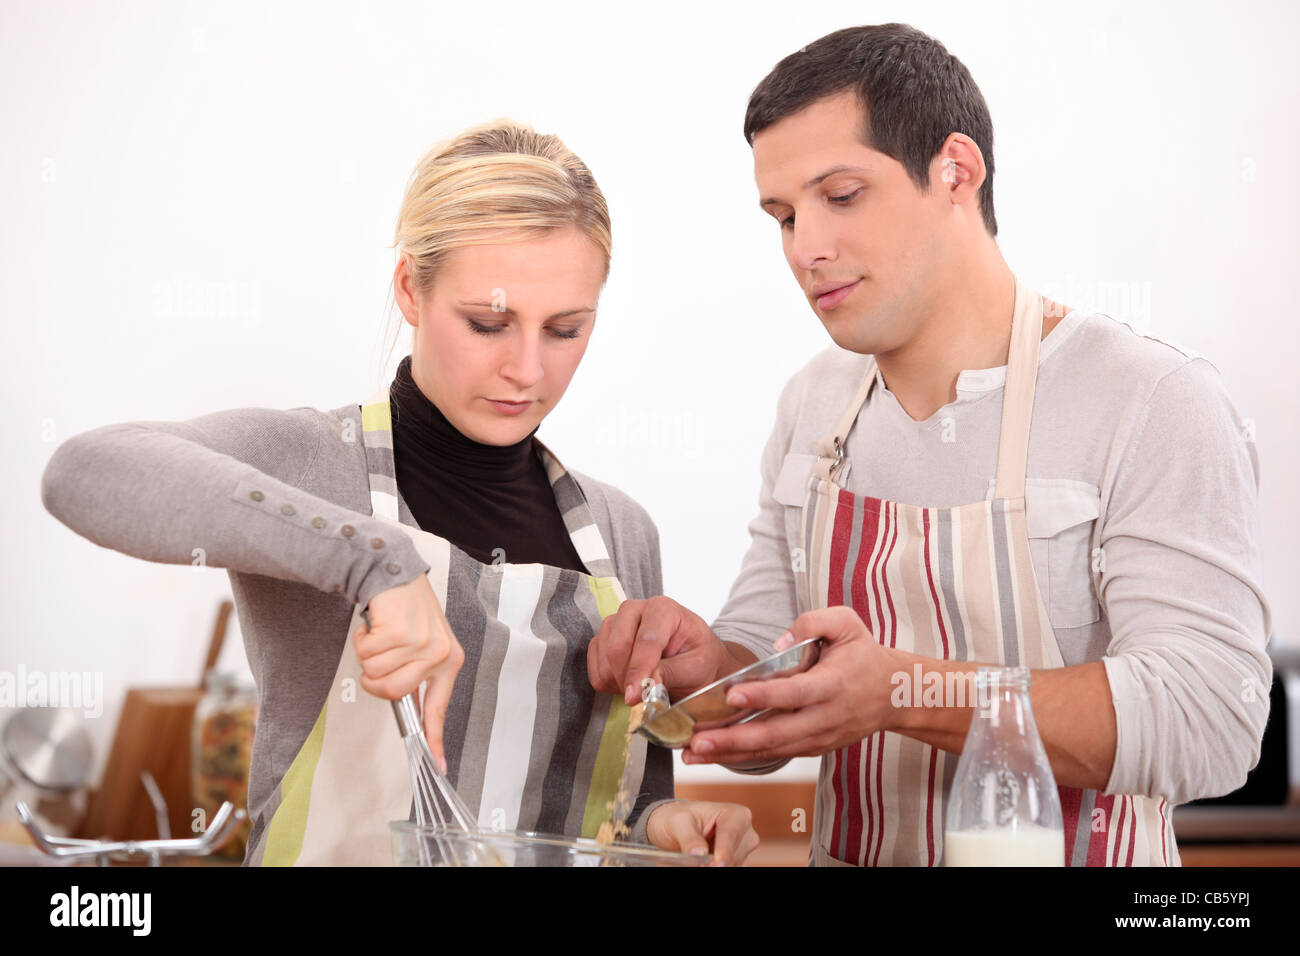 husband-and-wife-whisking-mixture-CB5YPJ